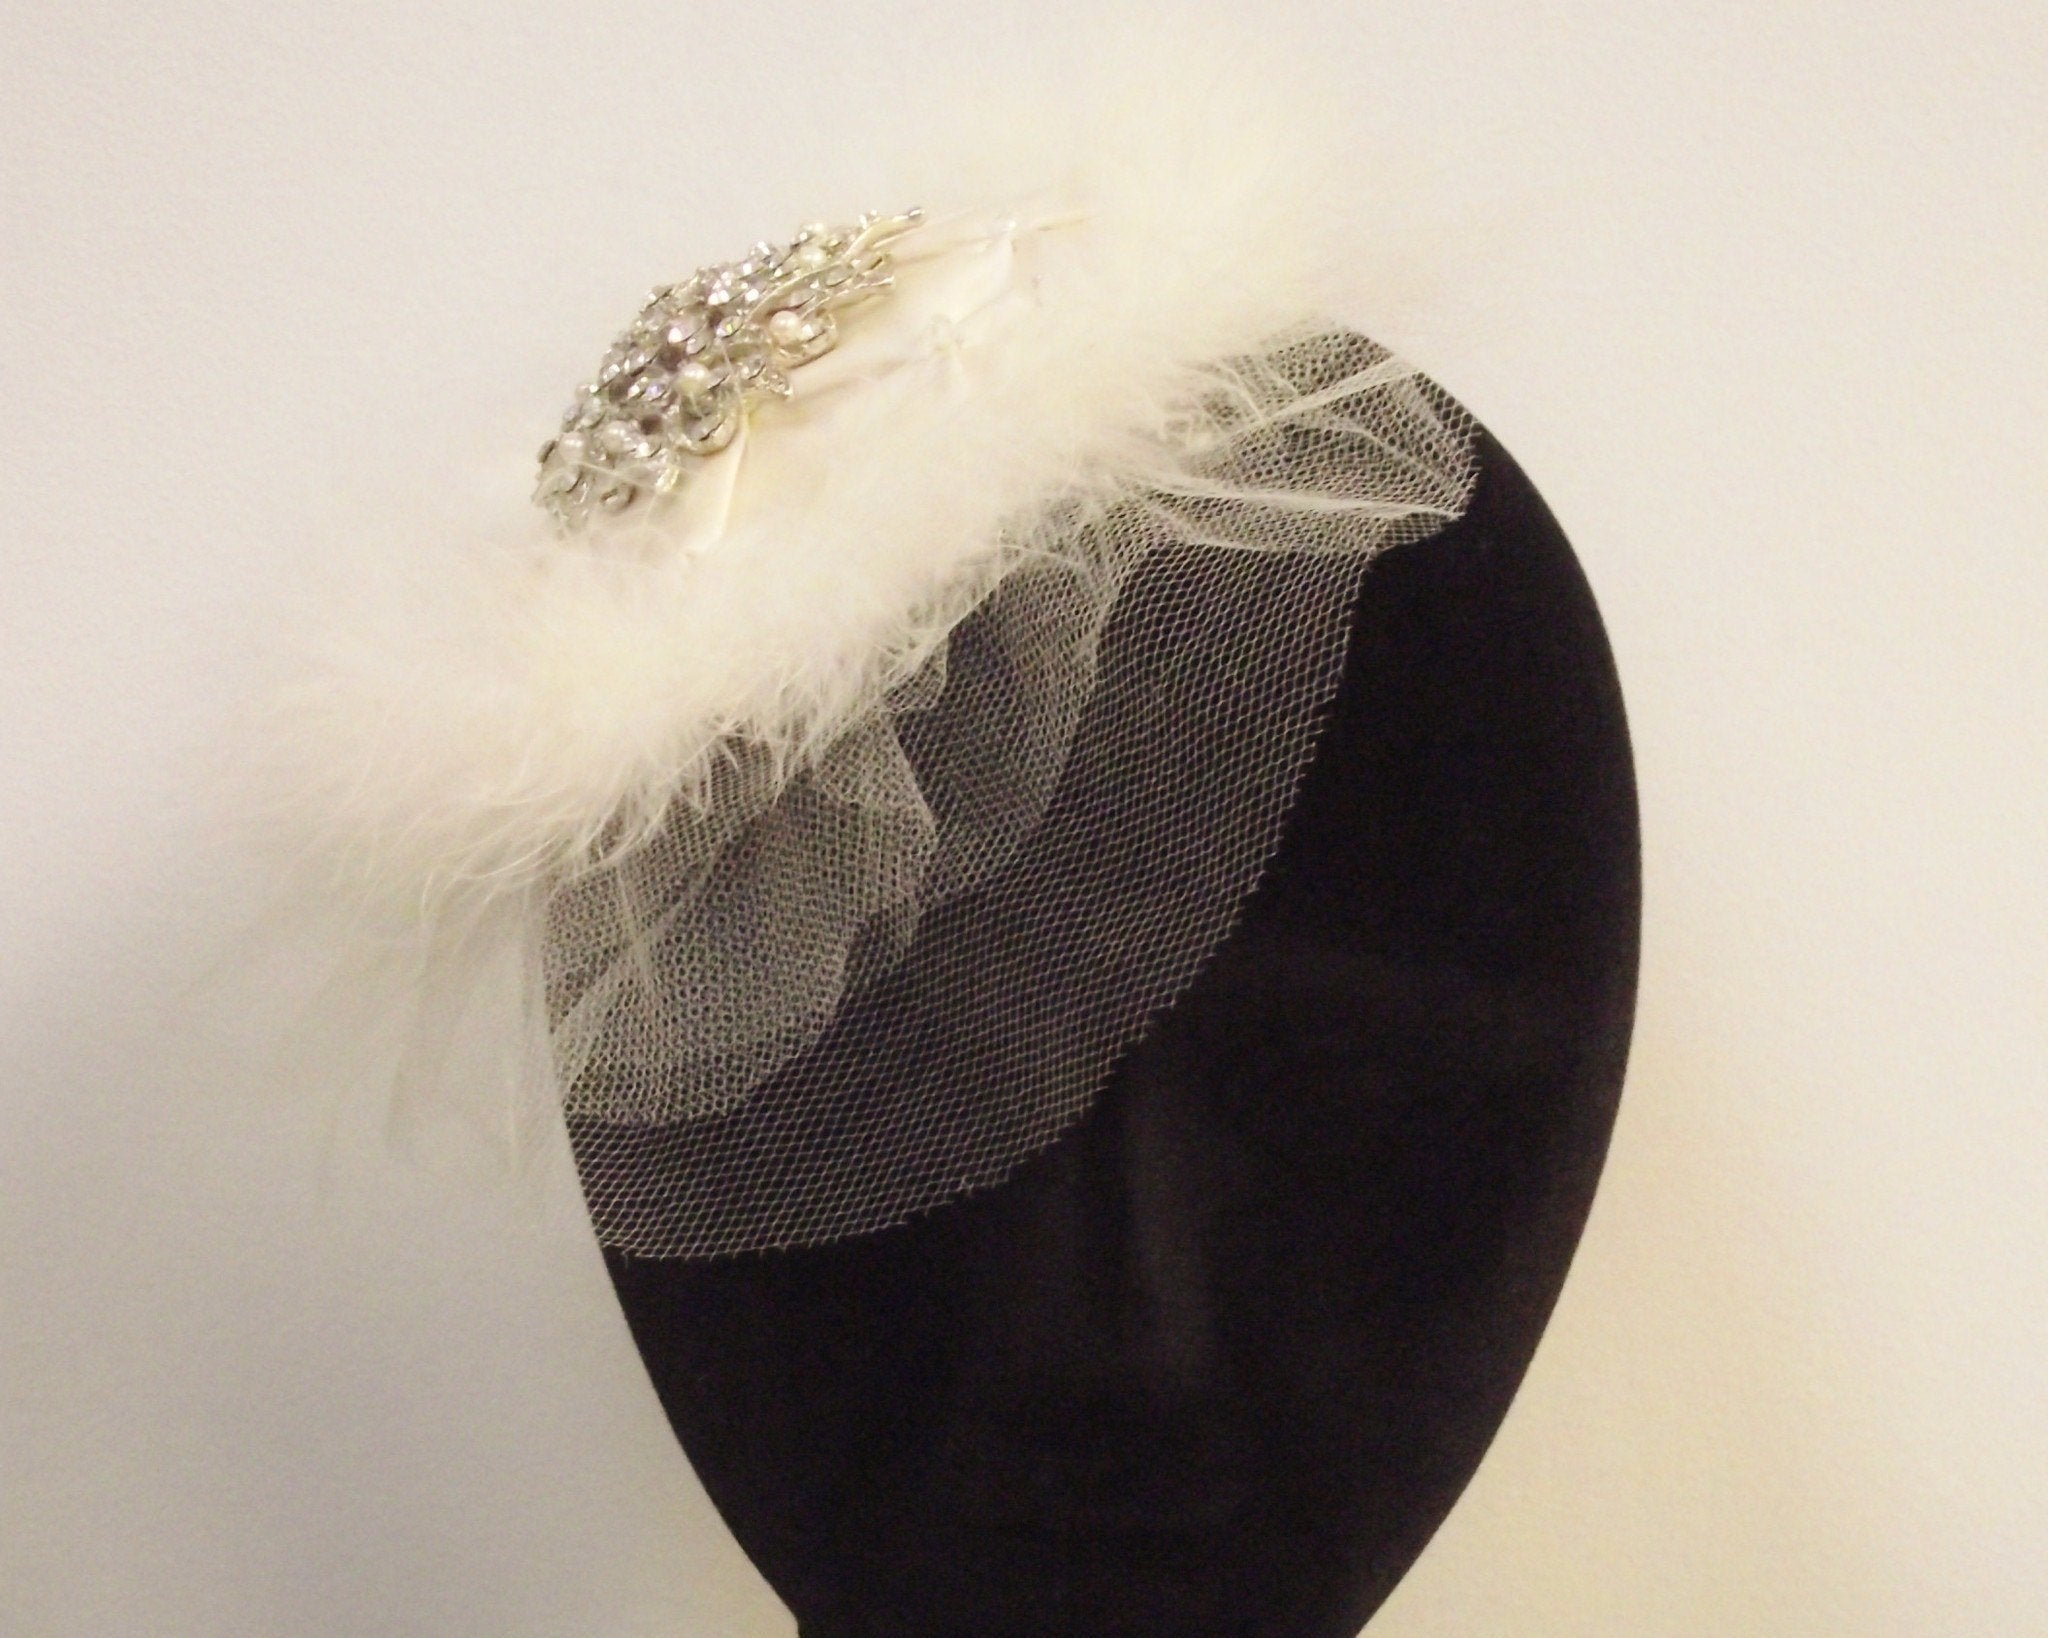 Birdcage Veils & Fascinators - Feather, Satin & Tulle Headpiece, With Antique Style Brooch, Serena